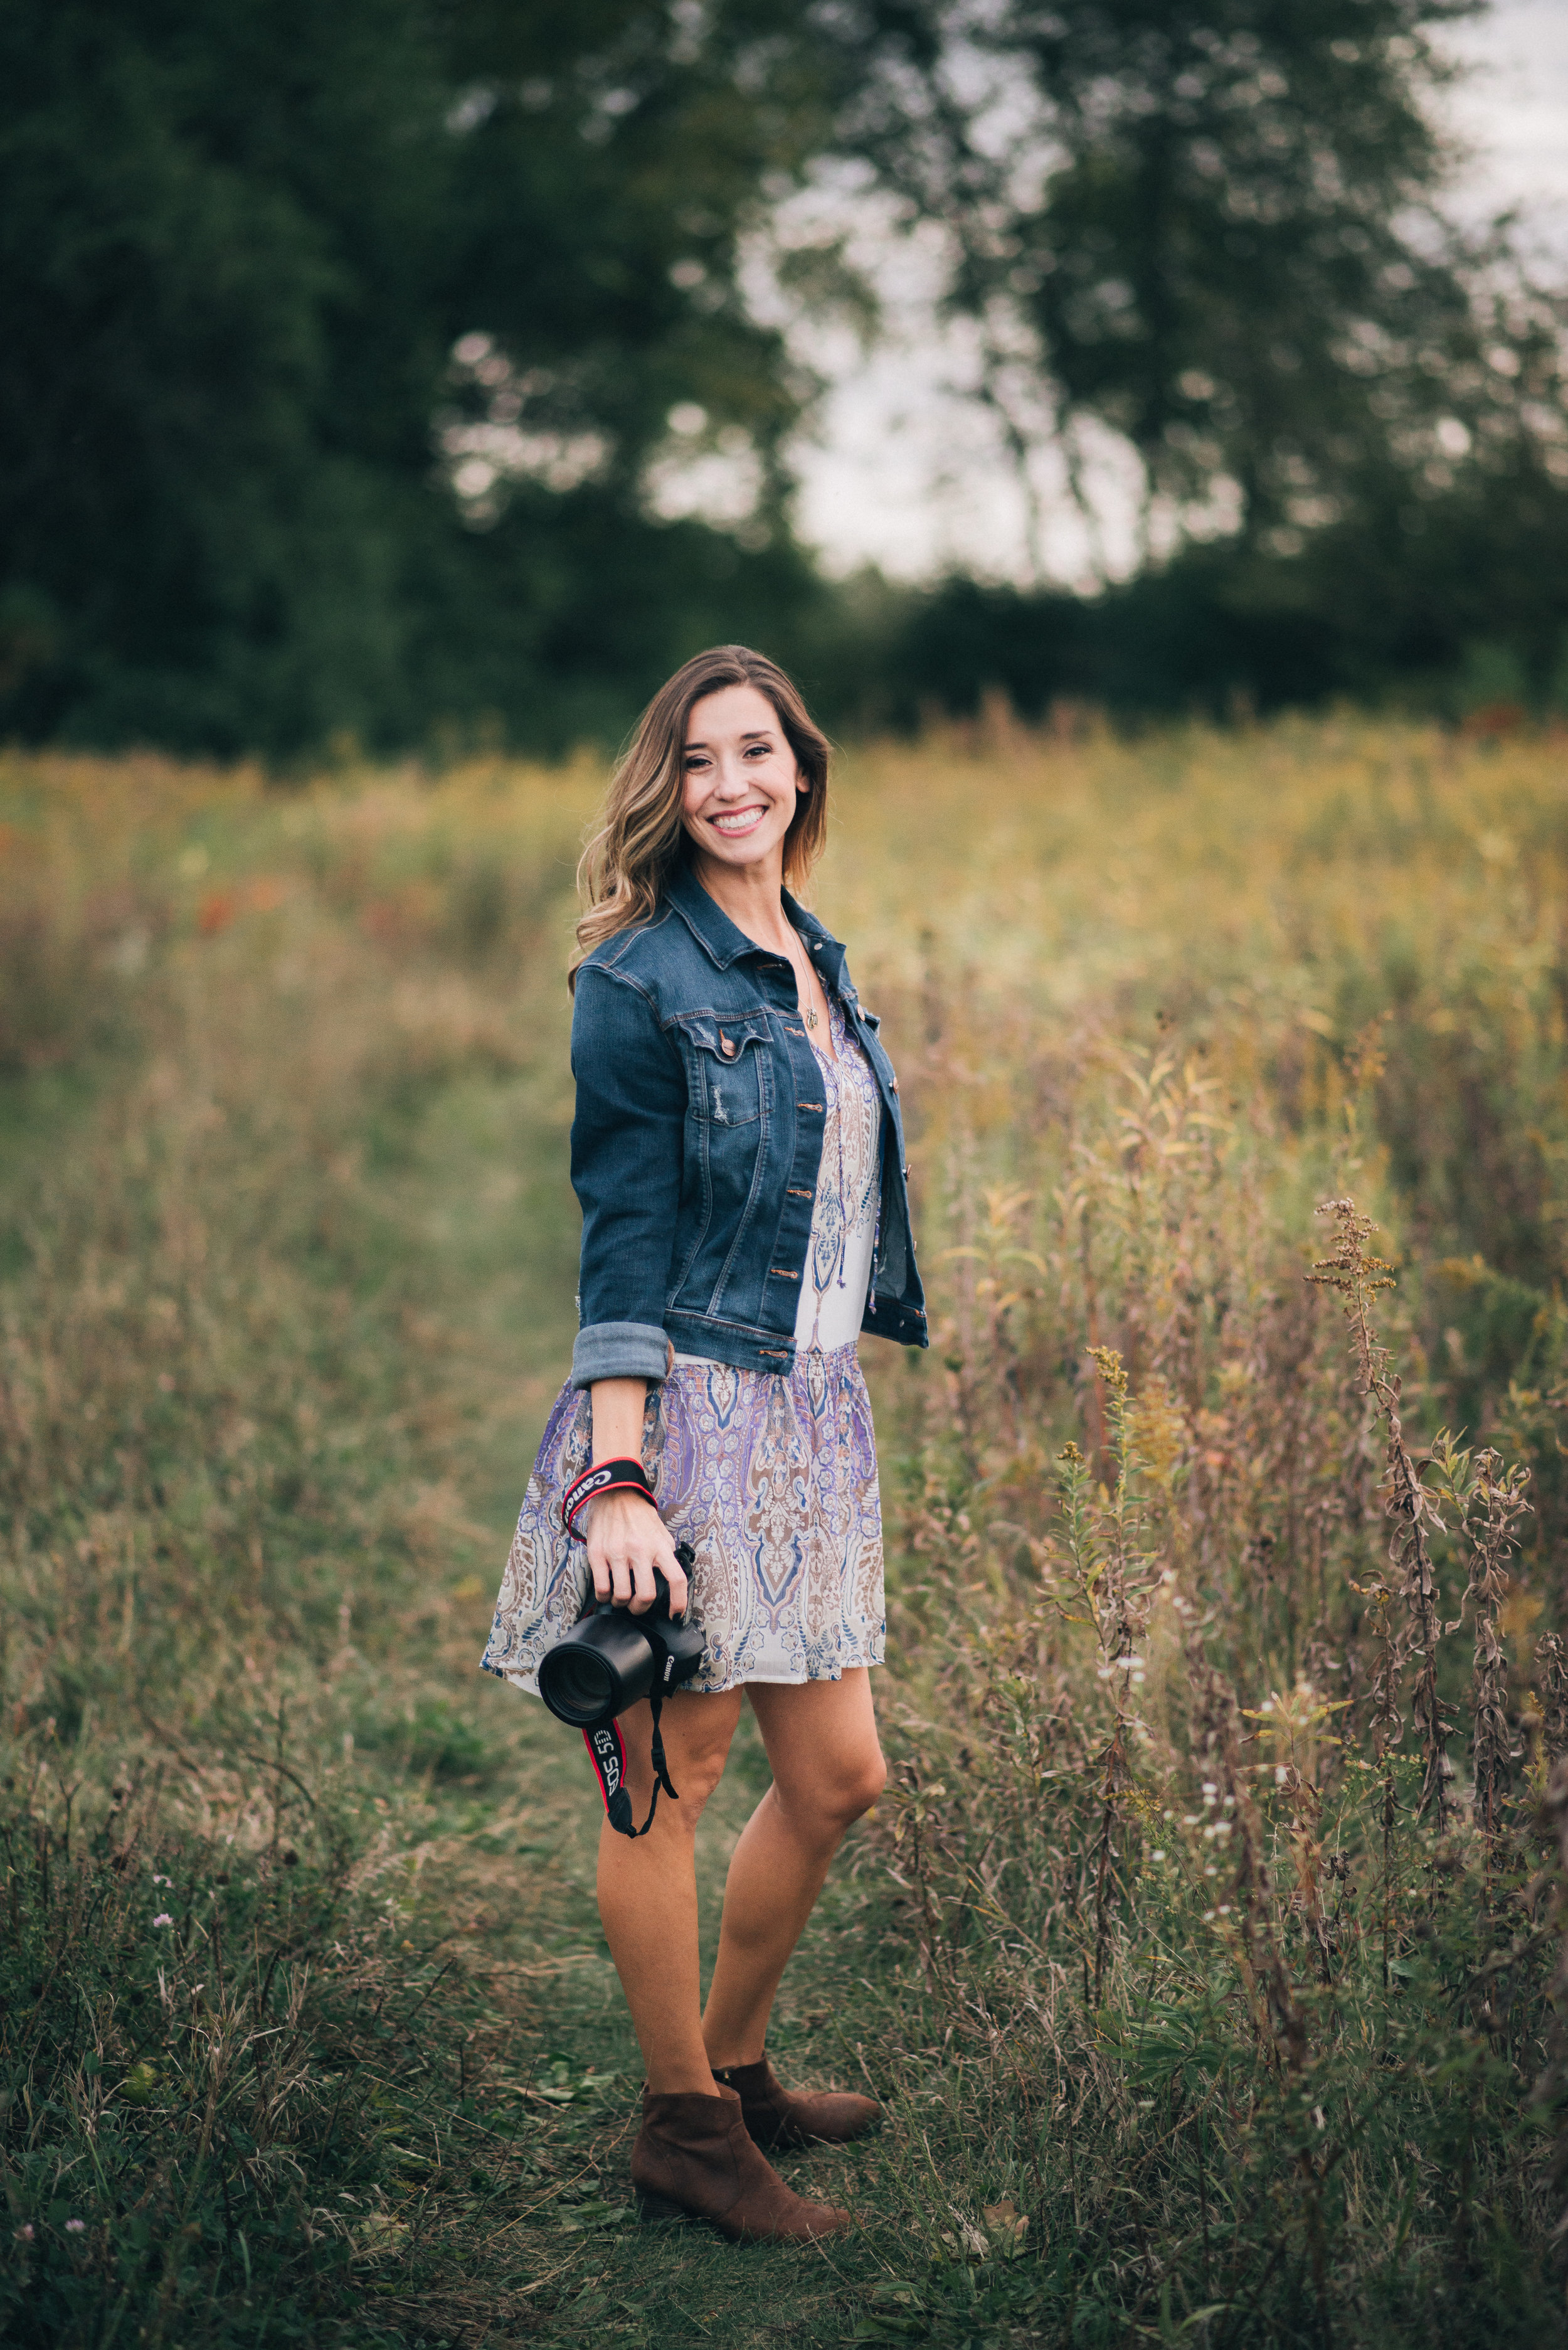 Copy of Hinsdale Photographer